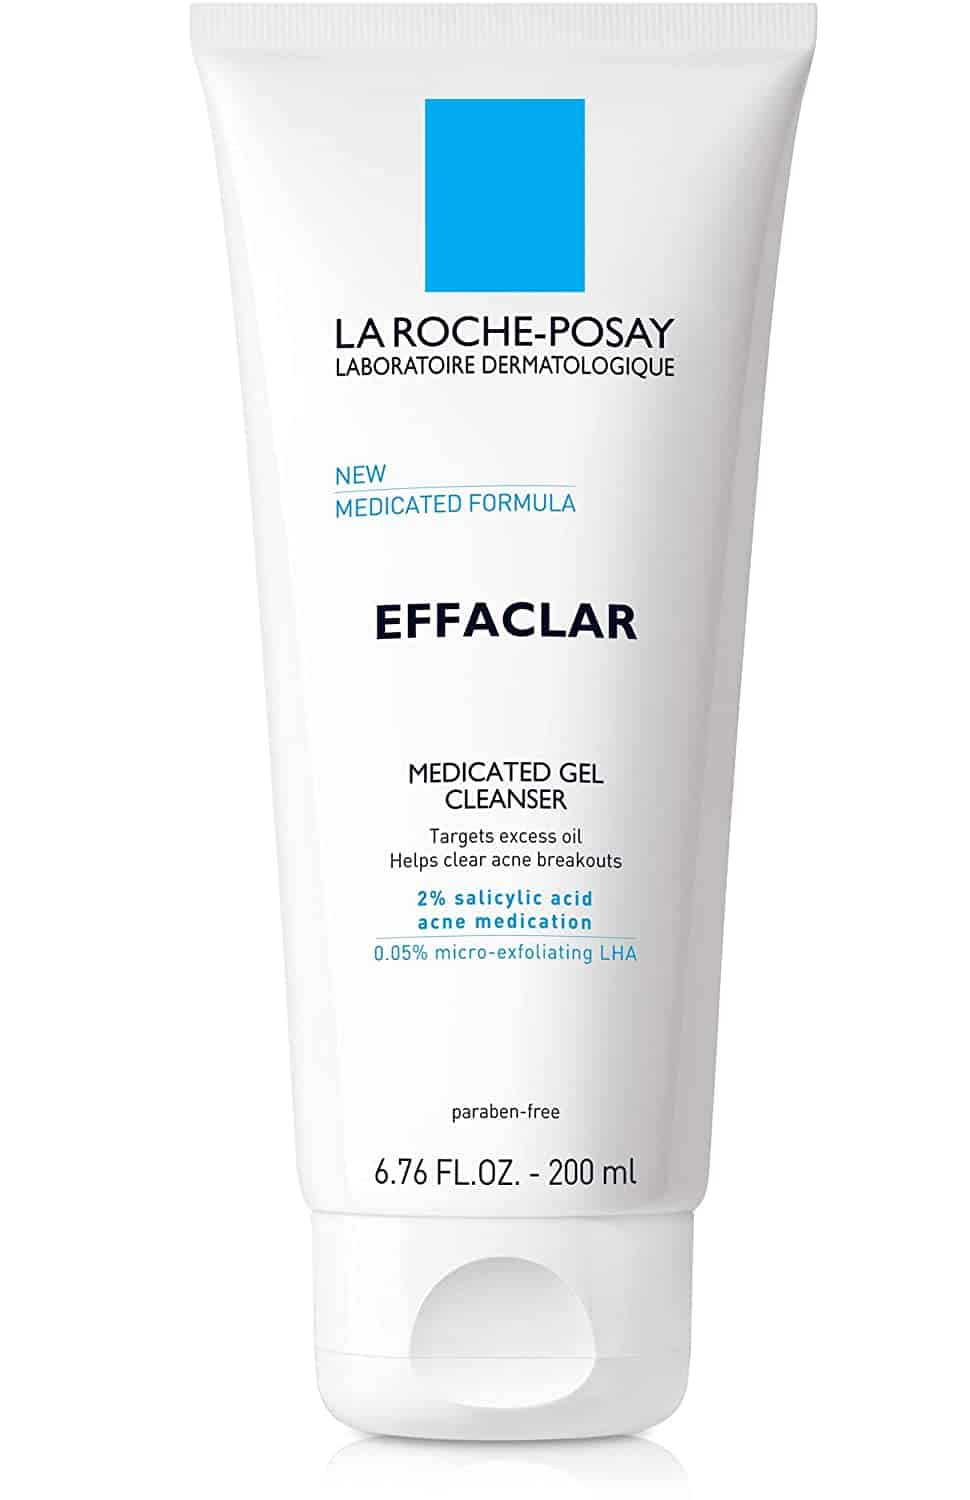 Best Face Washes For Men With Oily Skin – 2021 Reviews and Top Picks